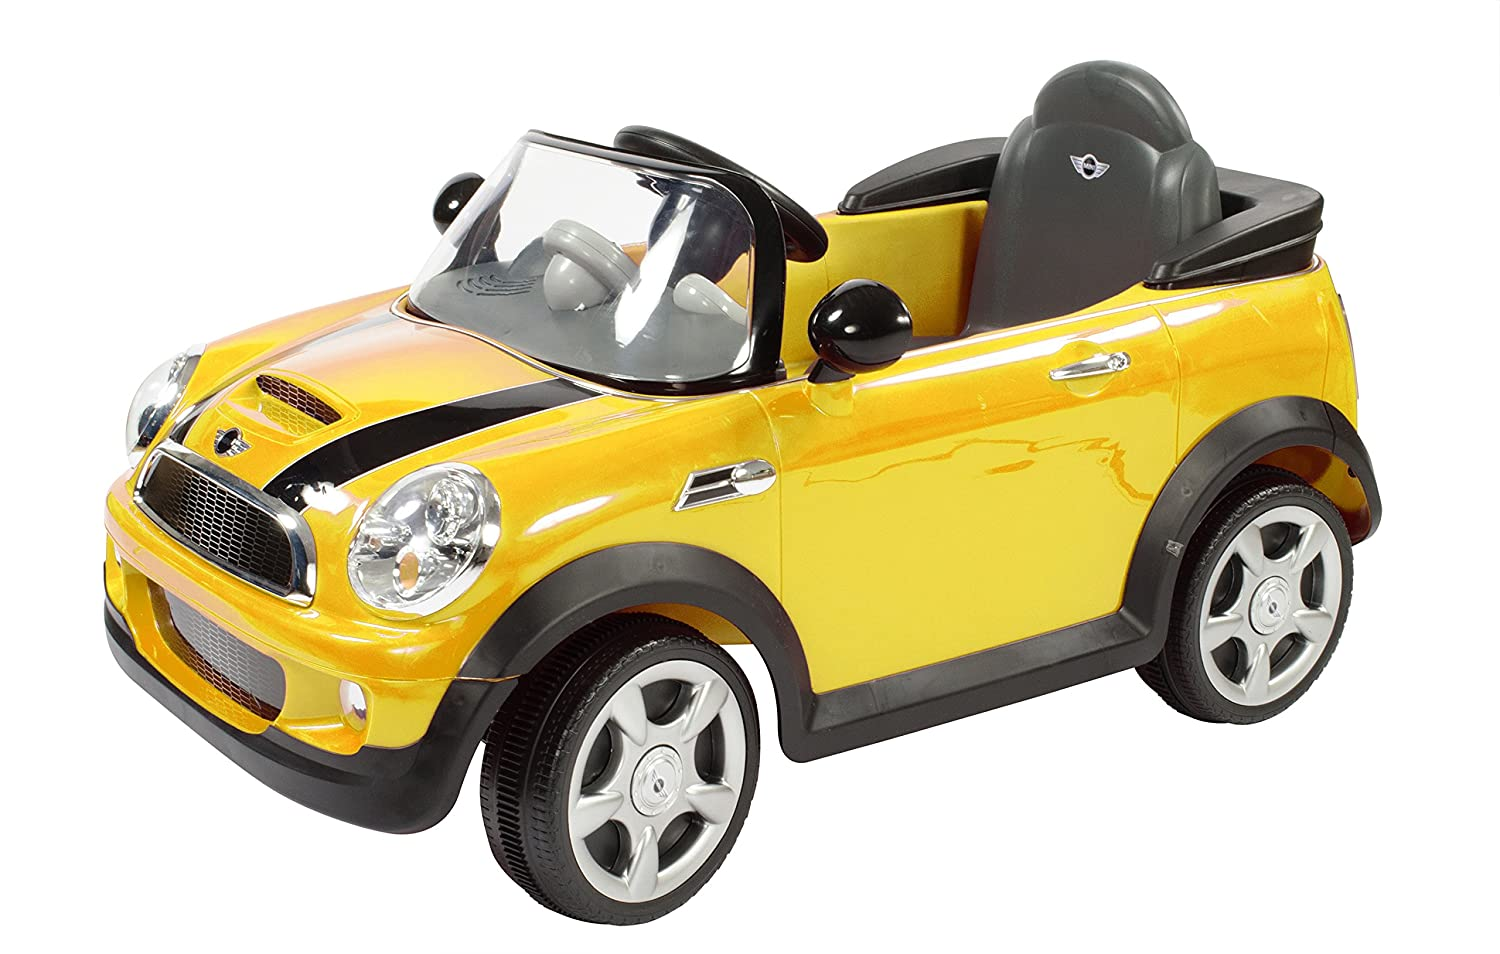 Amazon.com: Rollplay MINI Cooper 6 Volt Battery-Powered Children's Ride-On  Toy, Yellow: Toys & Games